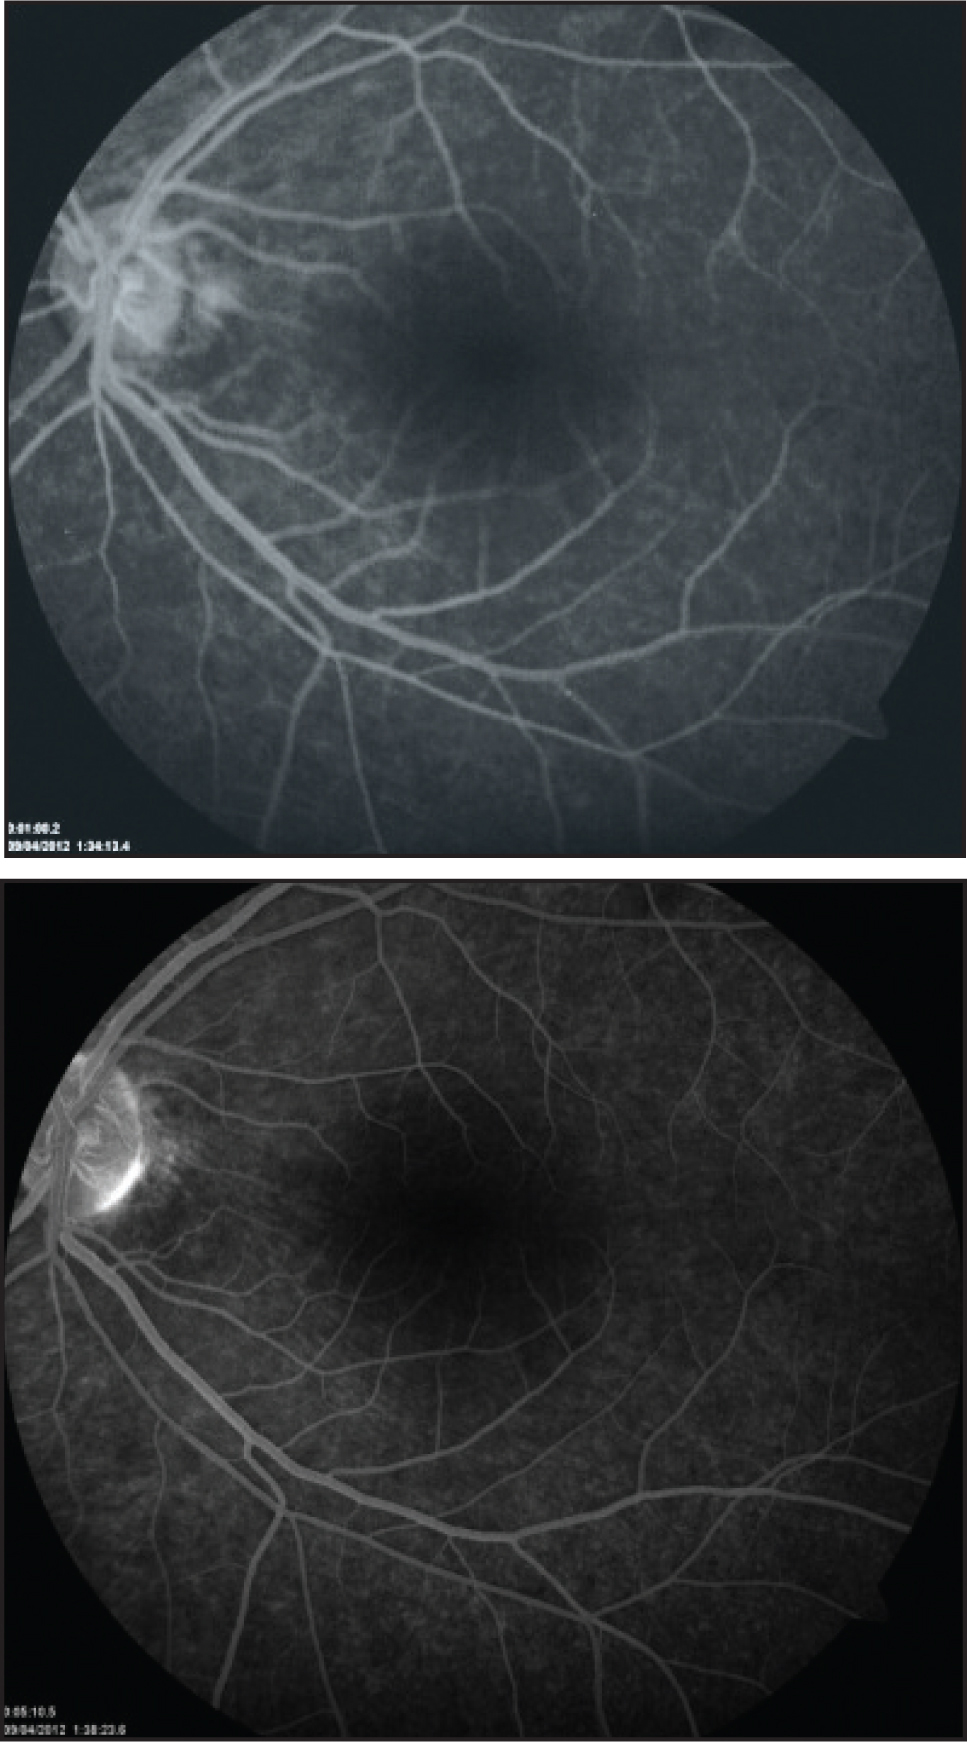 Flourecein angiography of left eye showing a normal arterio-venous filling with no leakage at the disc or macula.